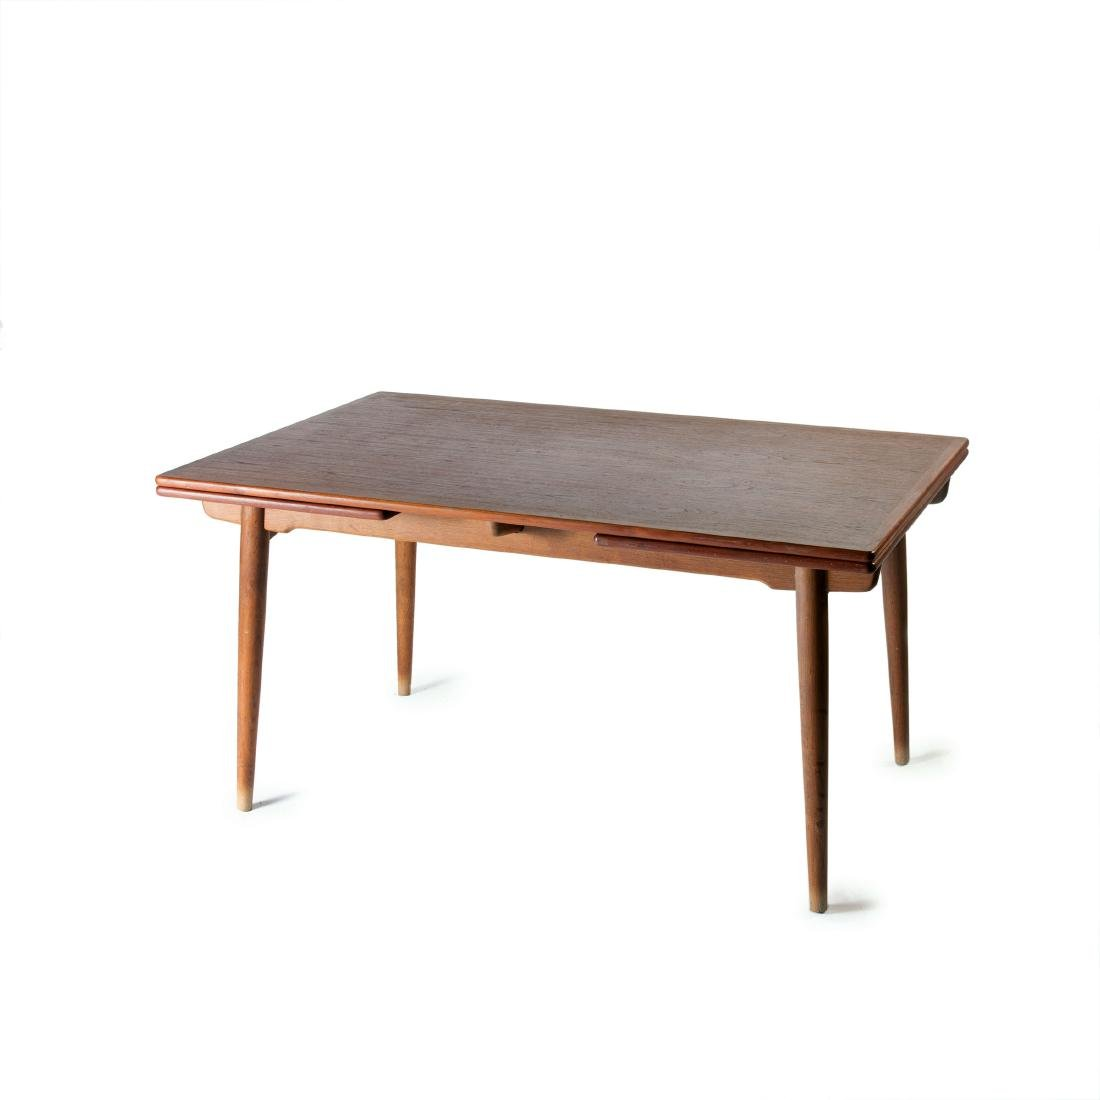 'AT 312' table, c. 1960